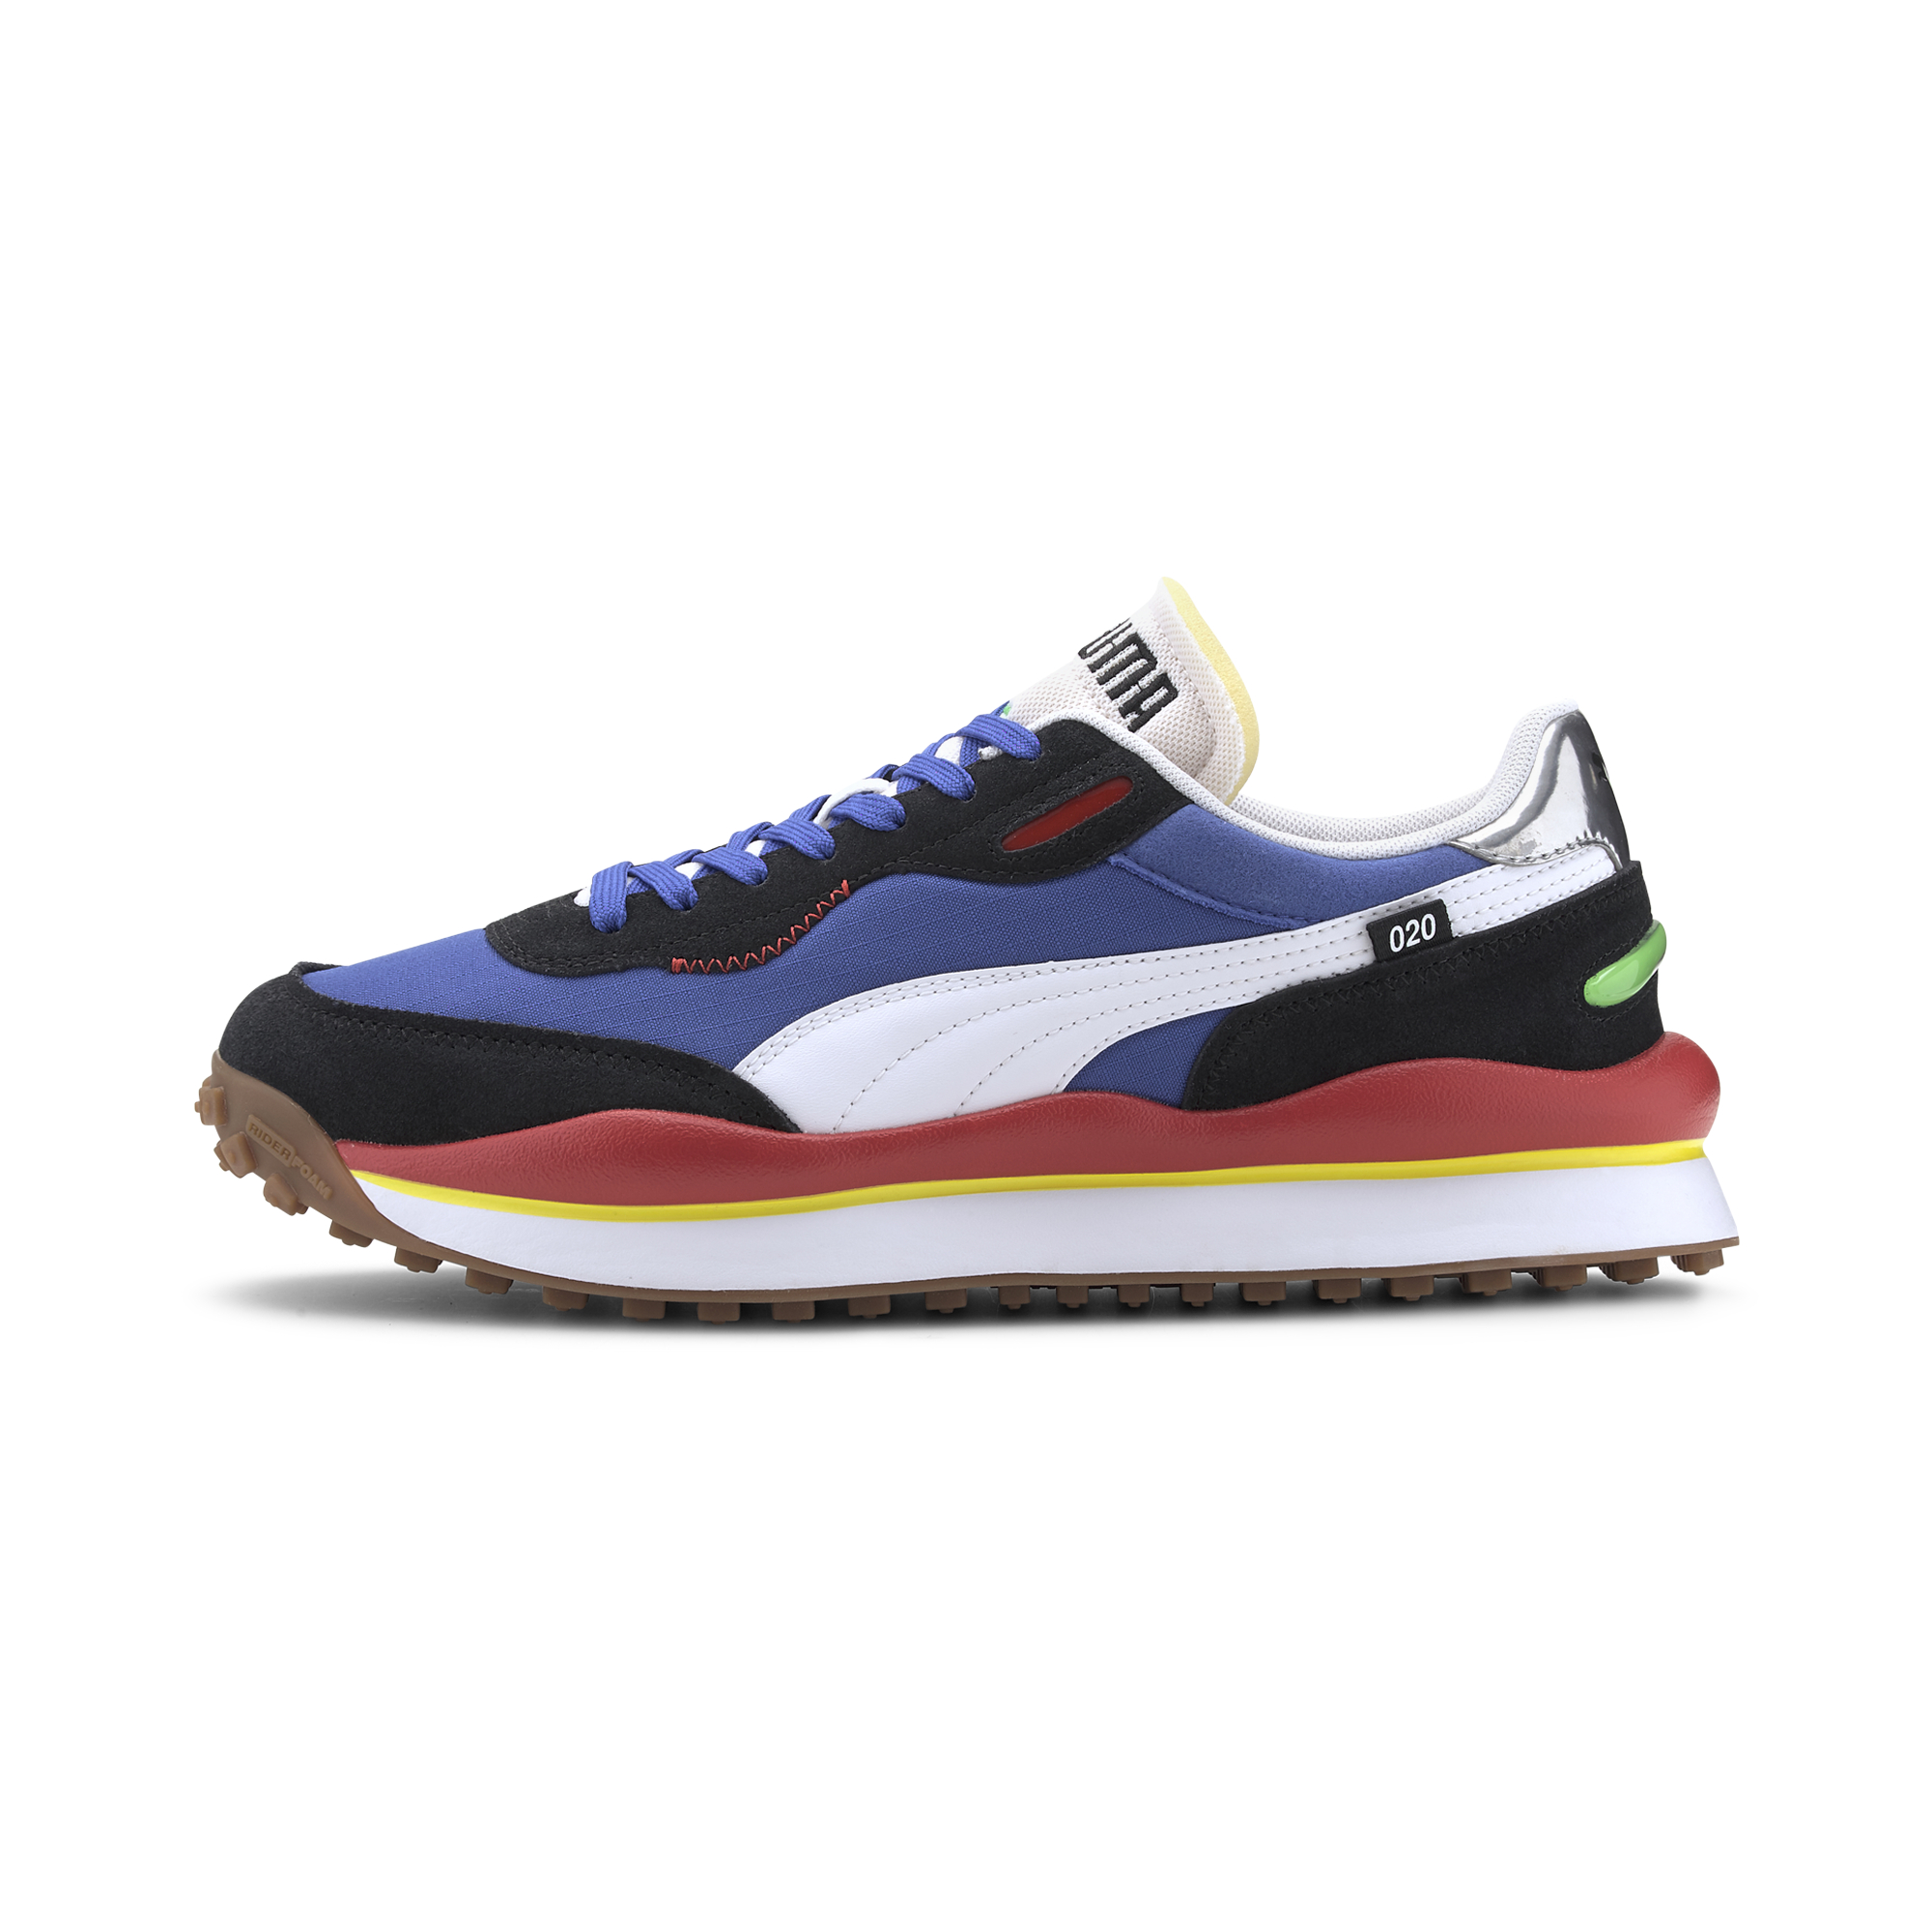 371150 01 Puma Style Rider Play On